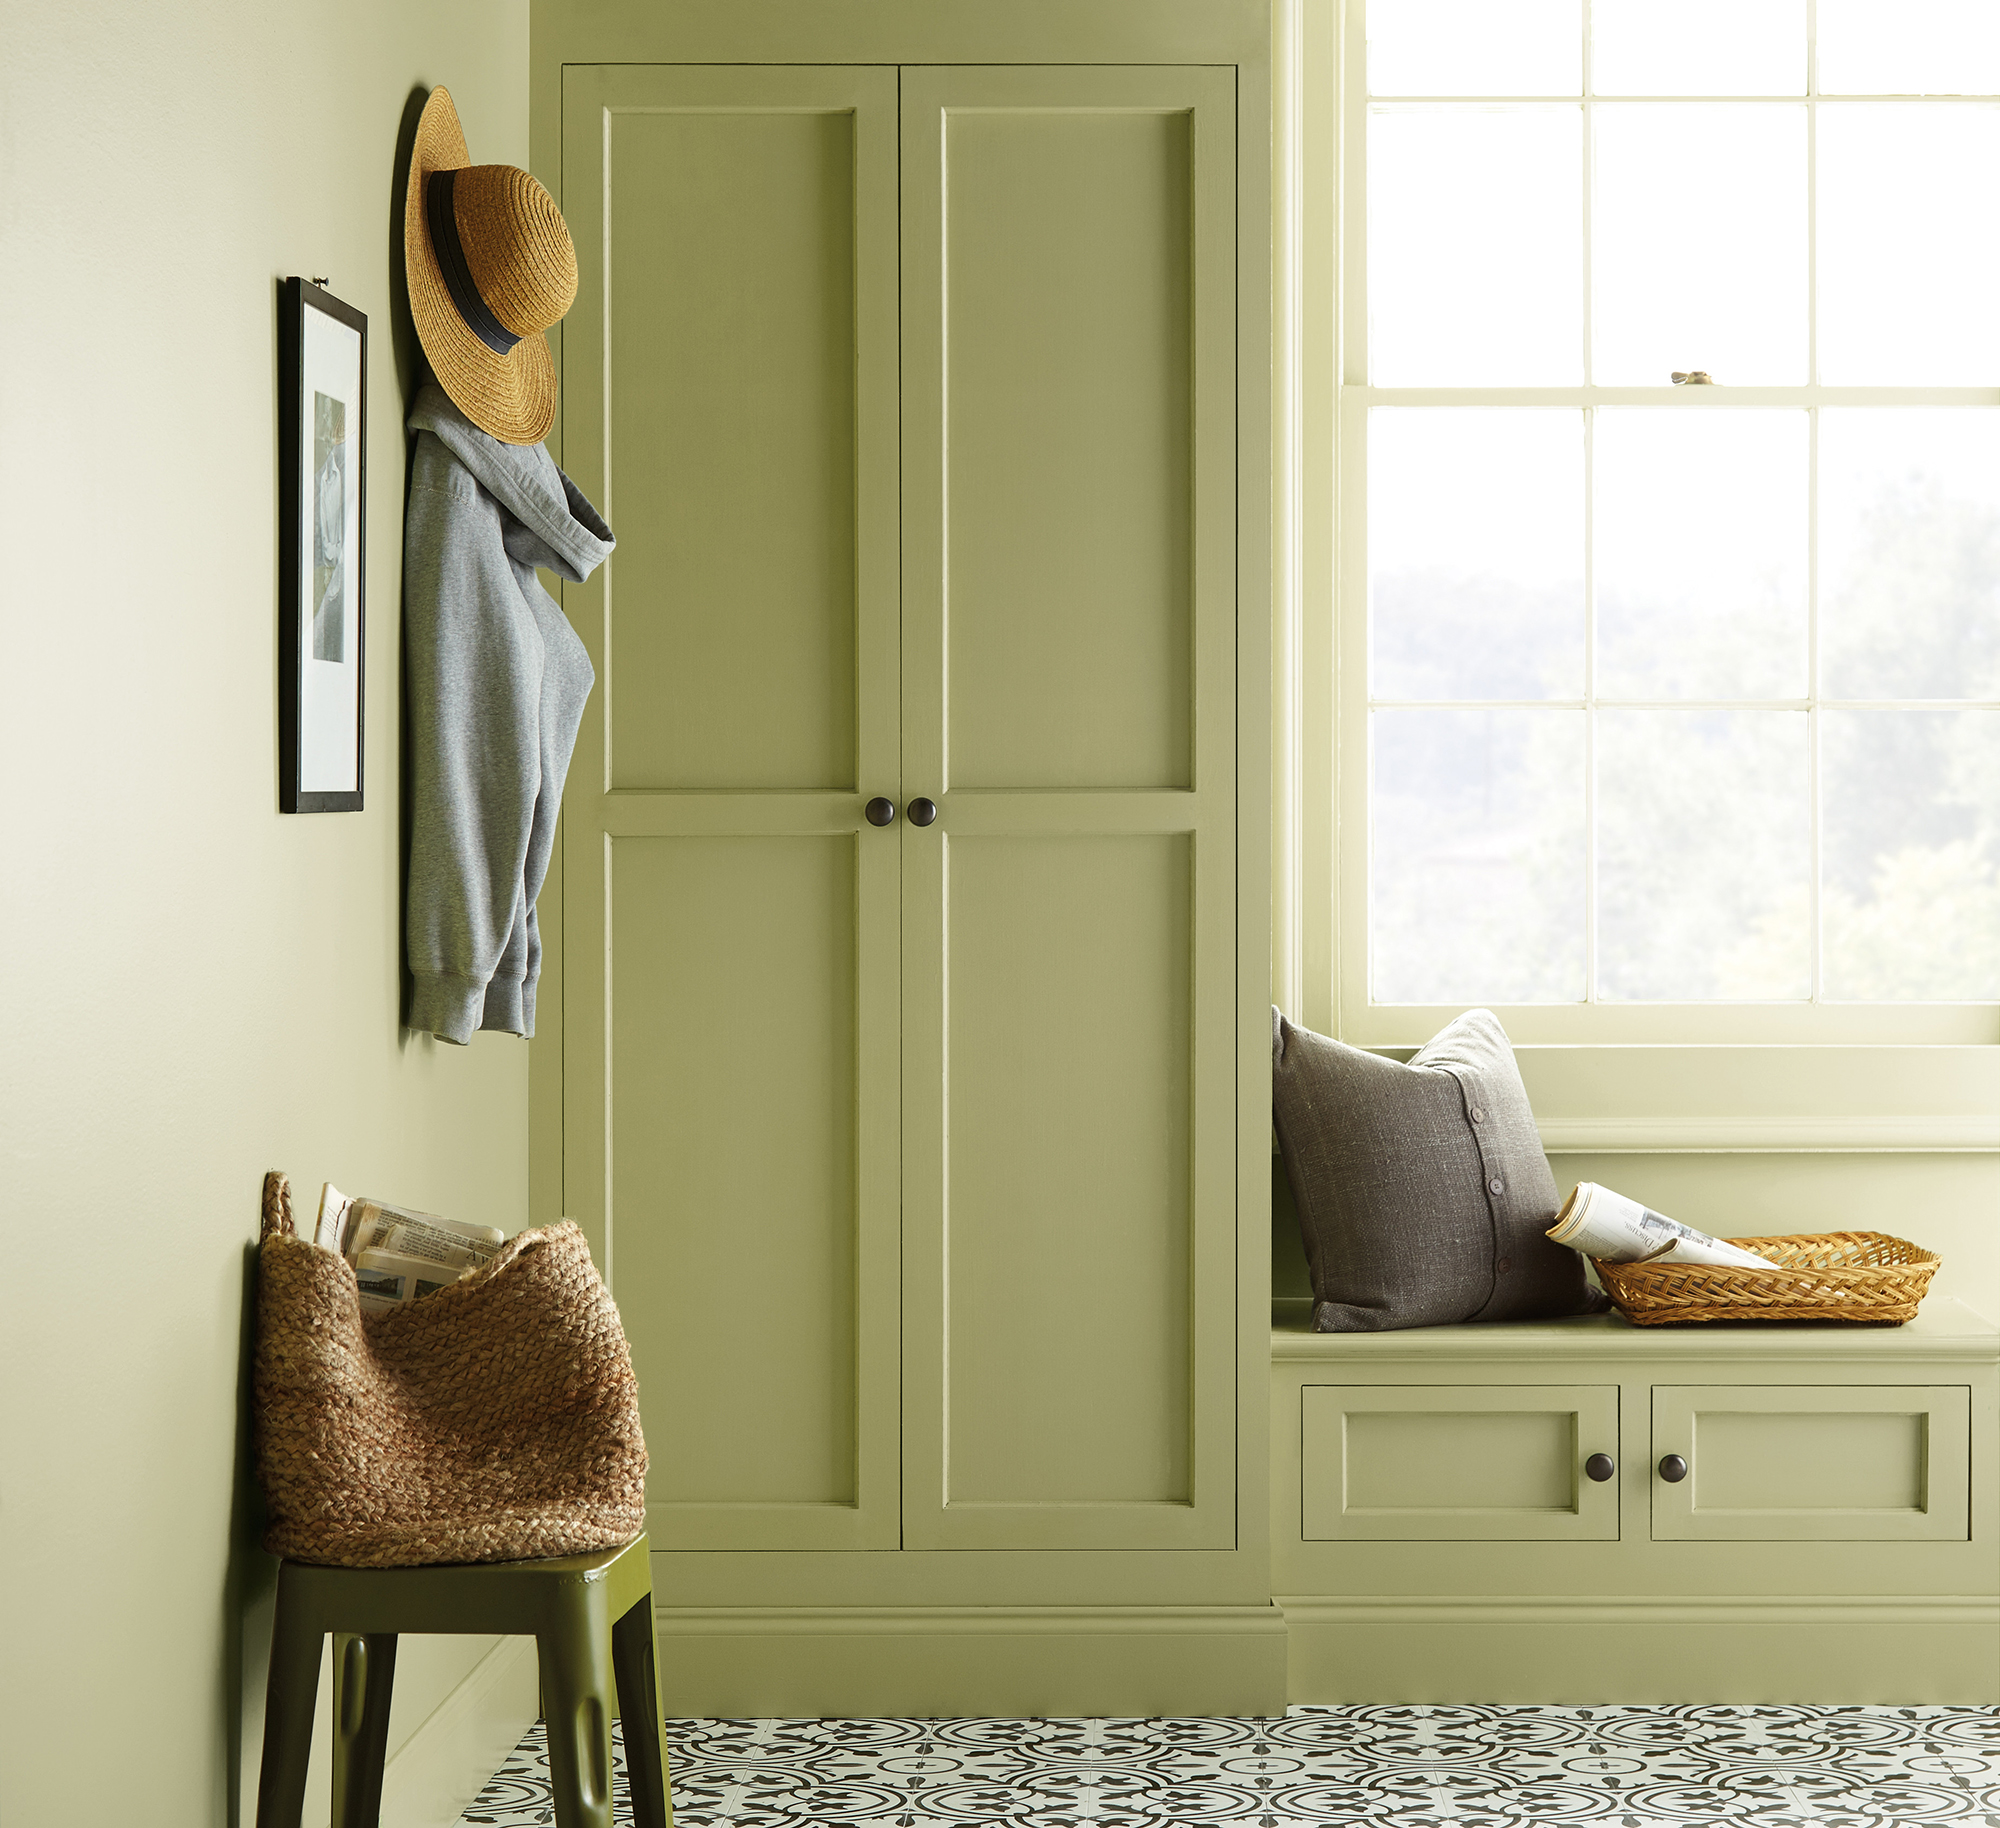 Best Living Room Colors 2020 Behr Paint Colors   Behr Paint Color of the Year 2020 | Real Simple